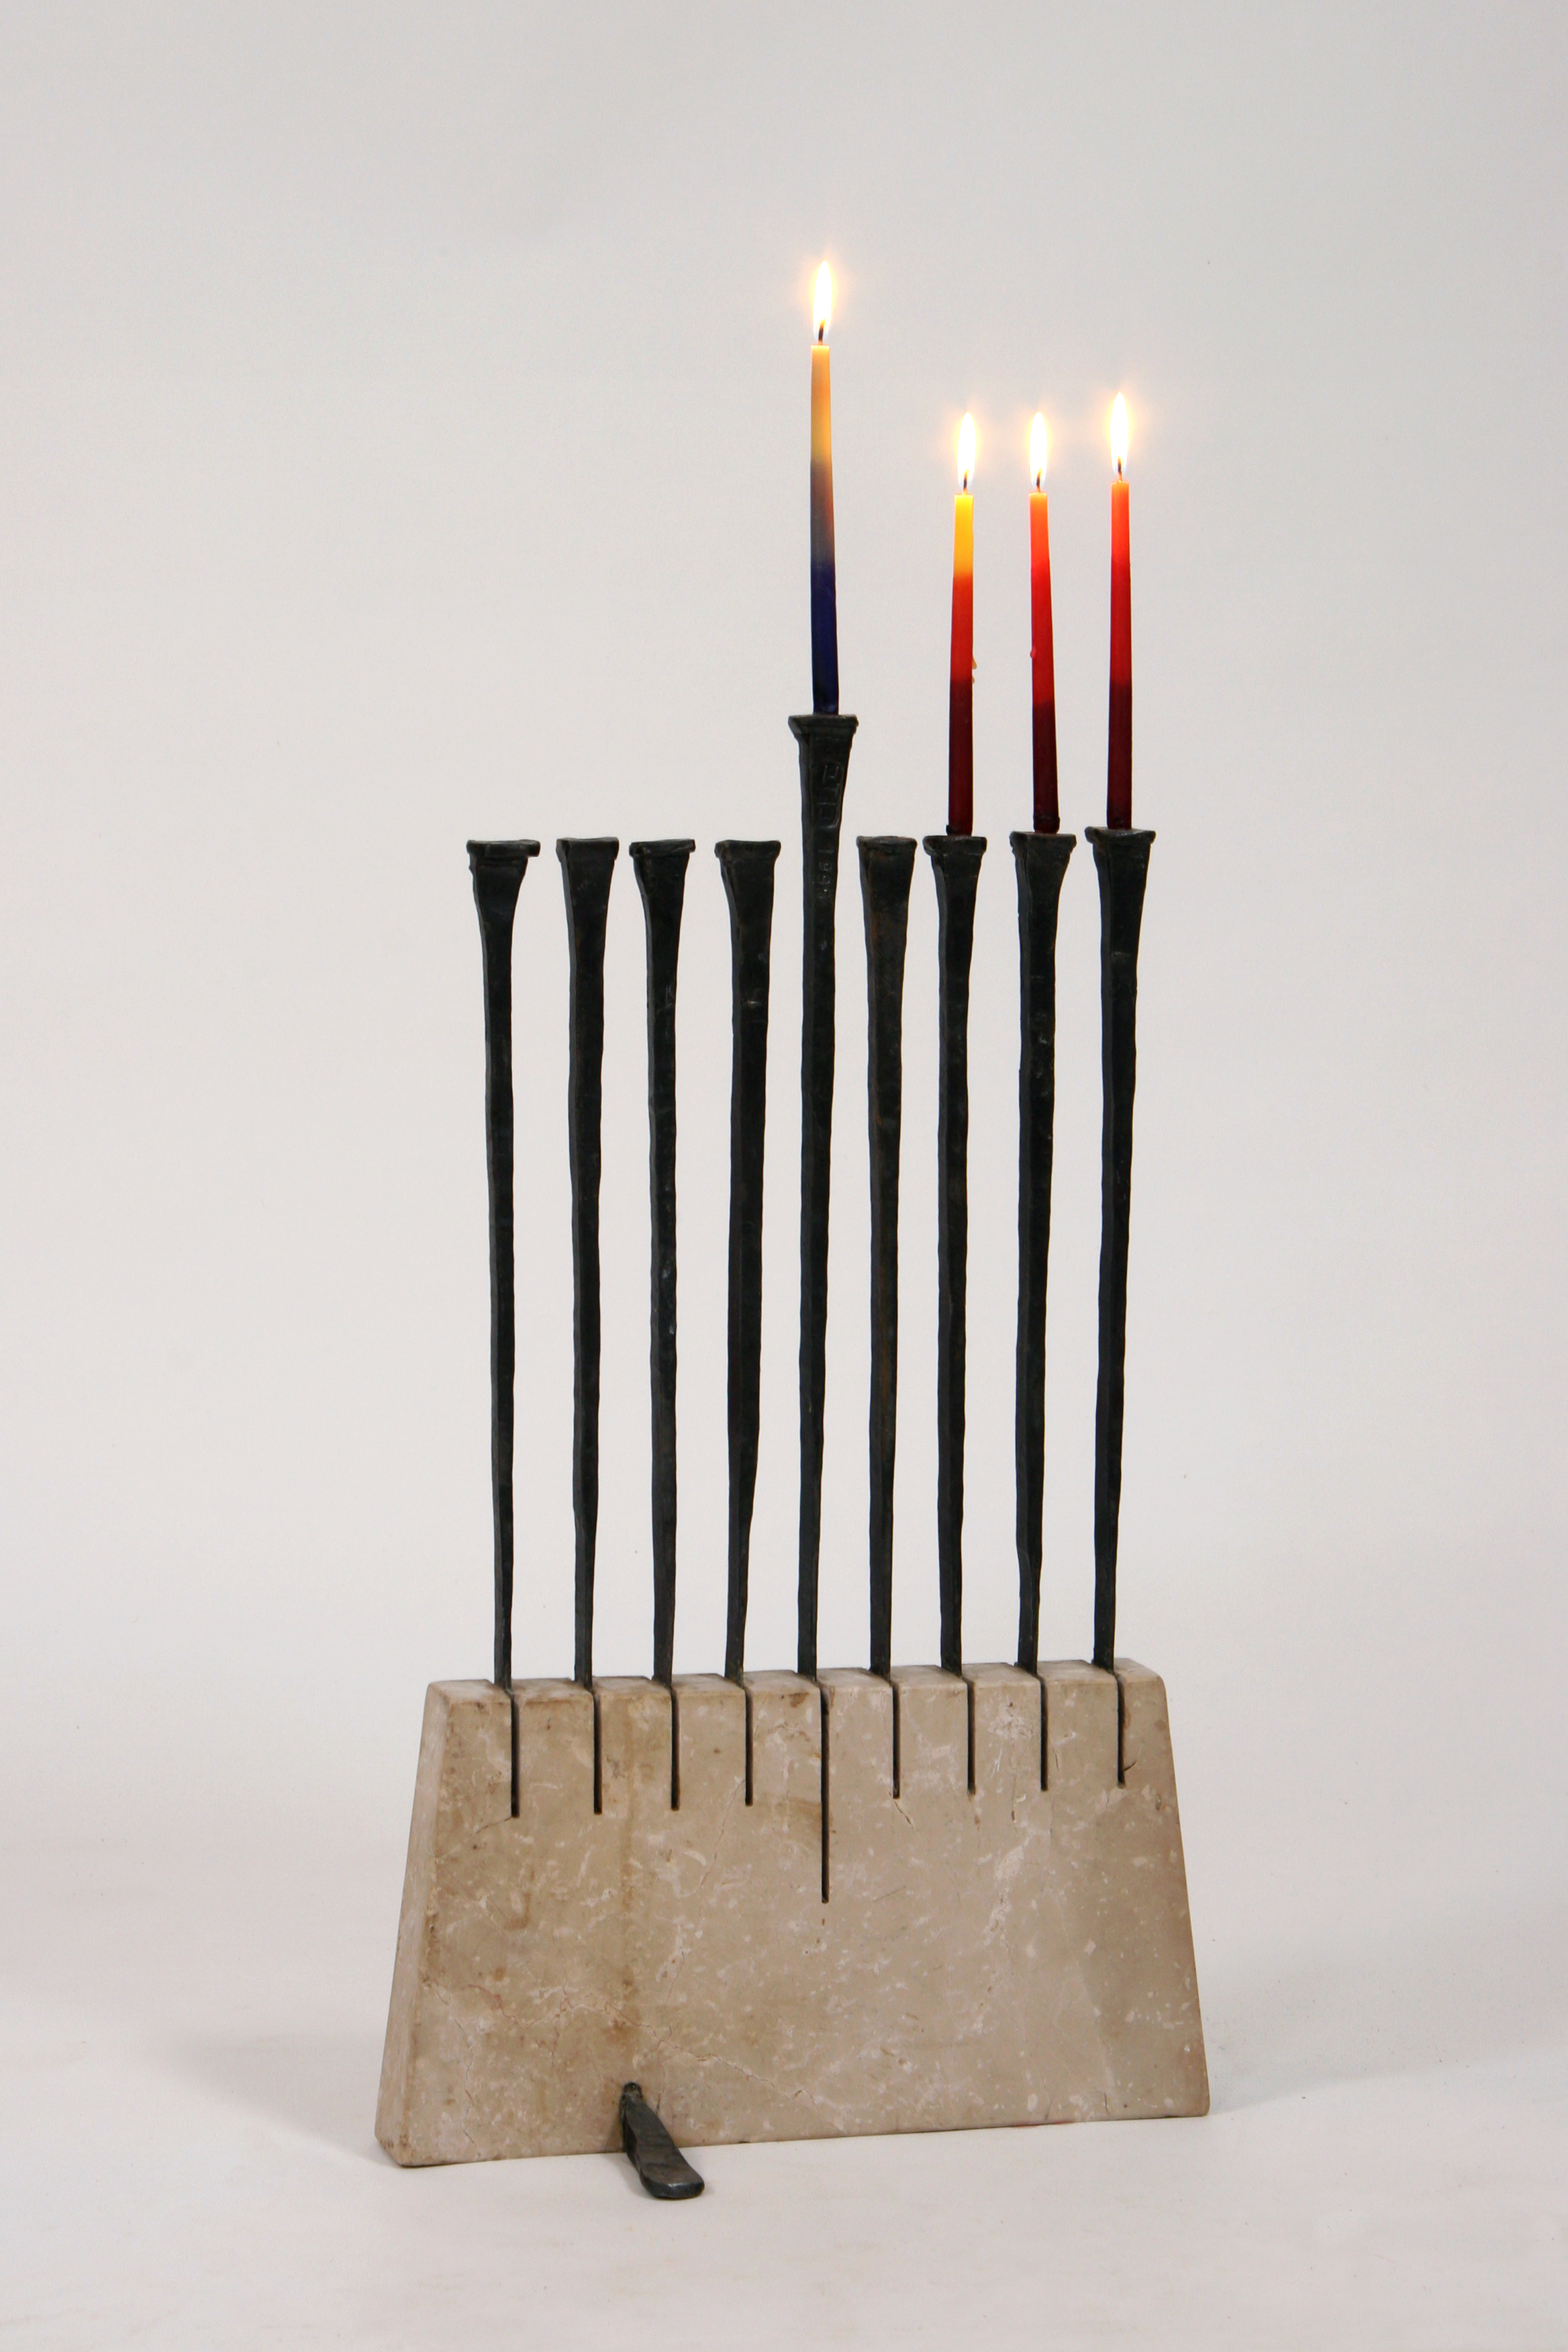 'Swords' - Sword-shaped Hannukah Menorah of Jerusalem Marble & Iron